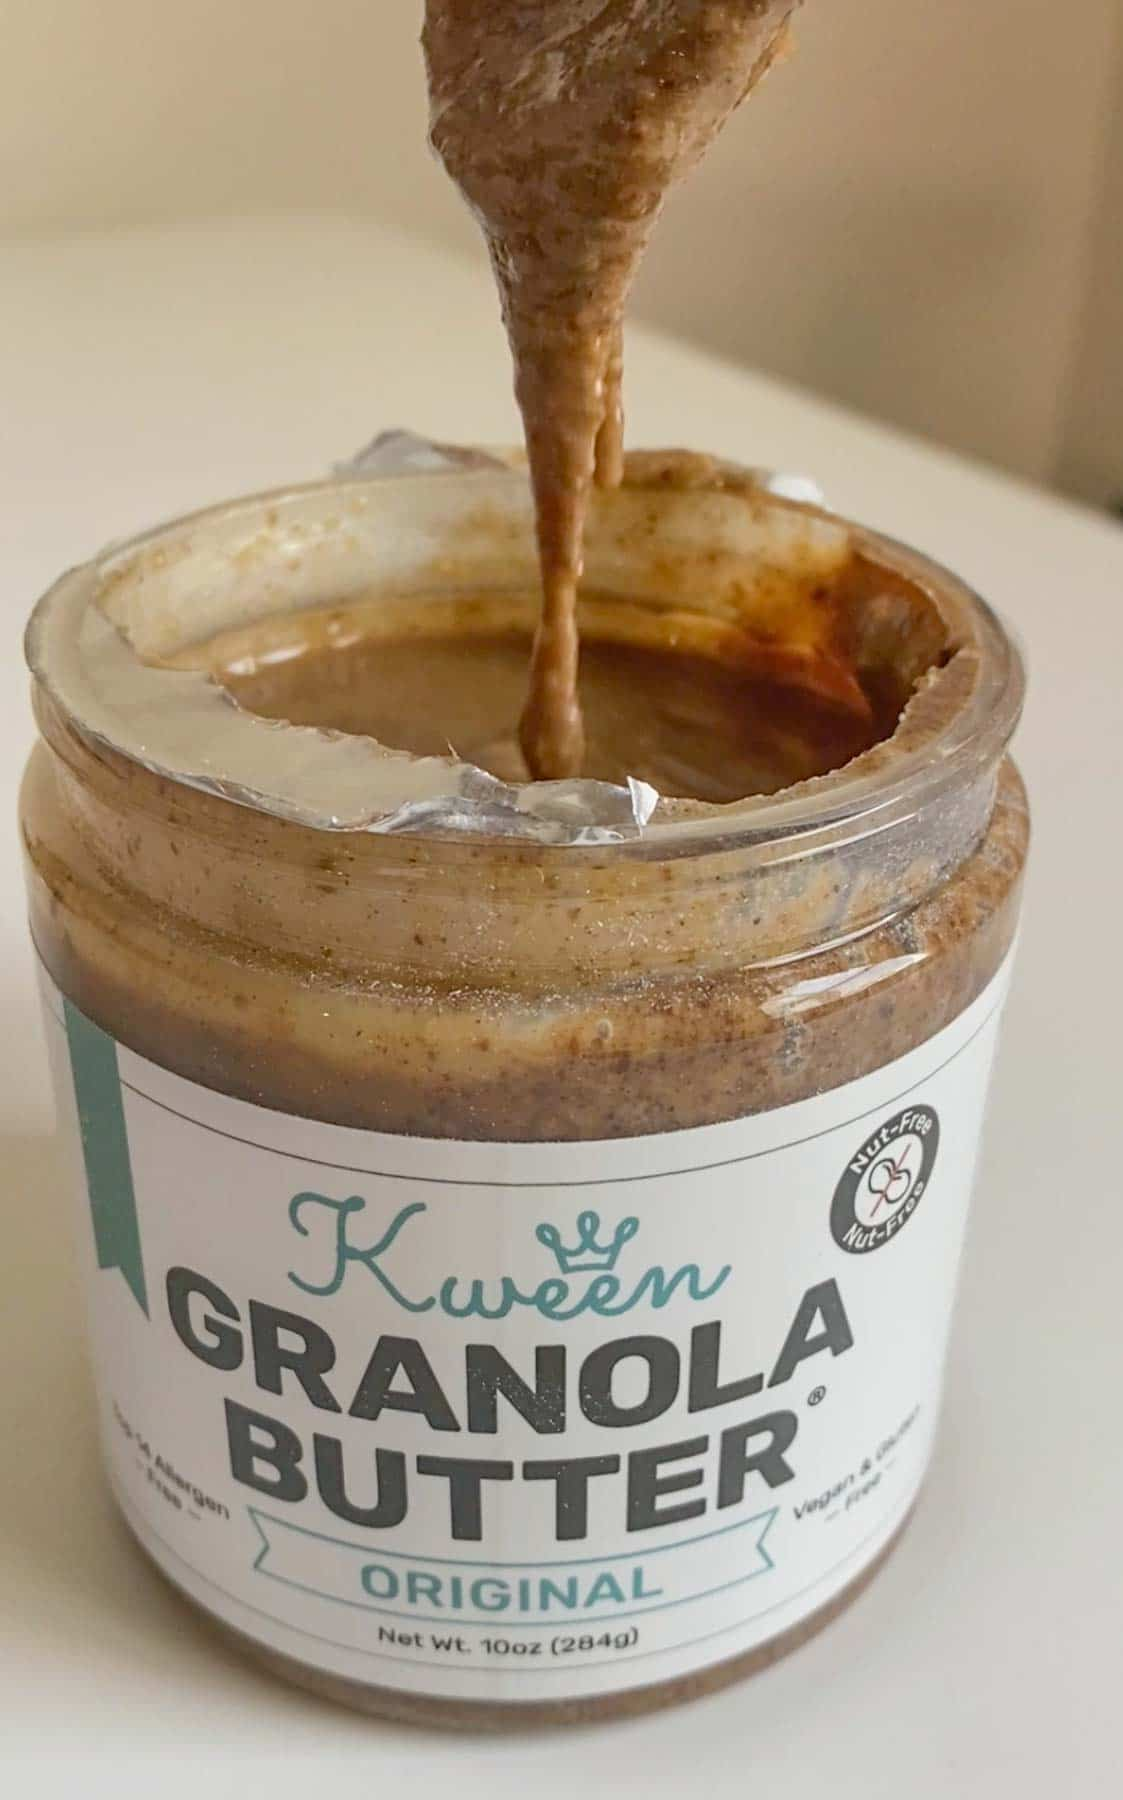 showing the texture of granola butter at room temperature